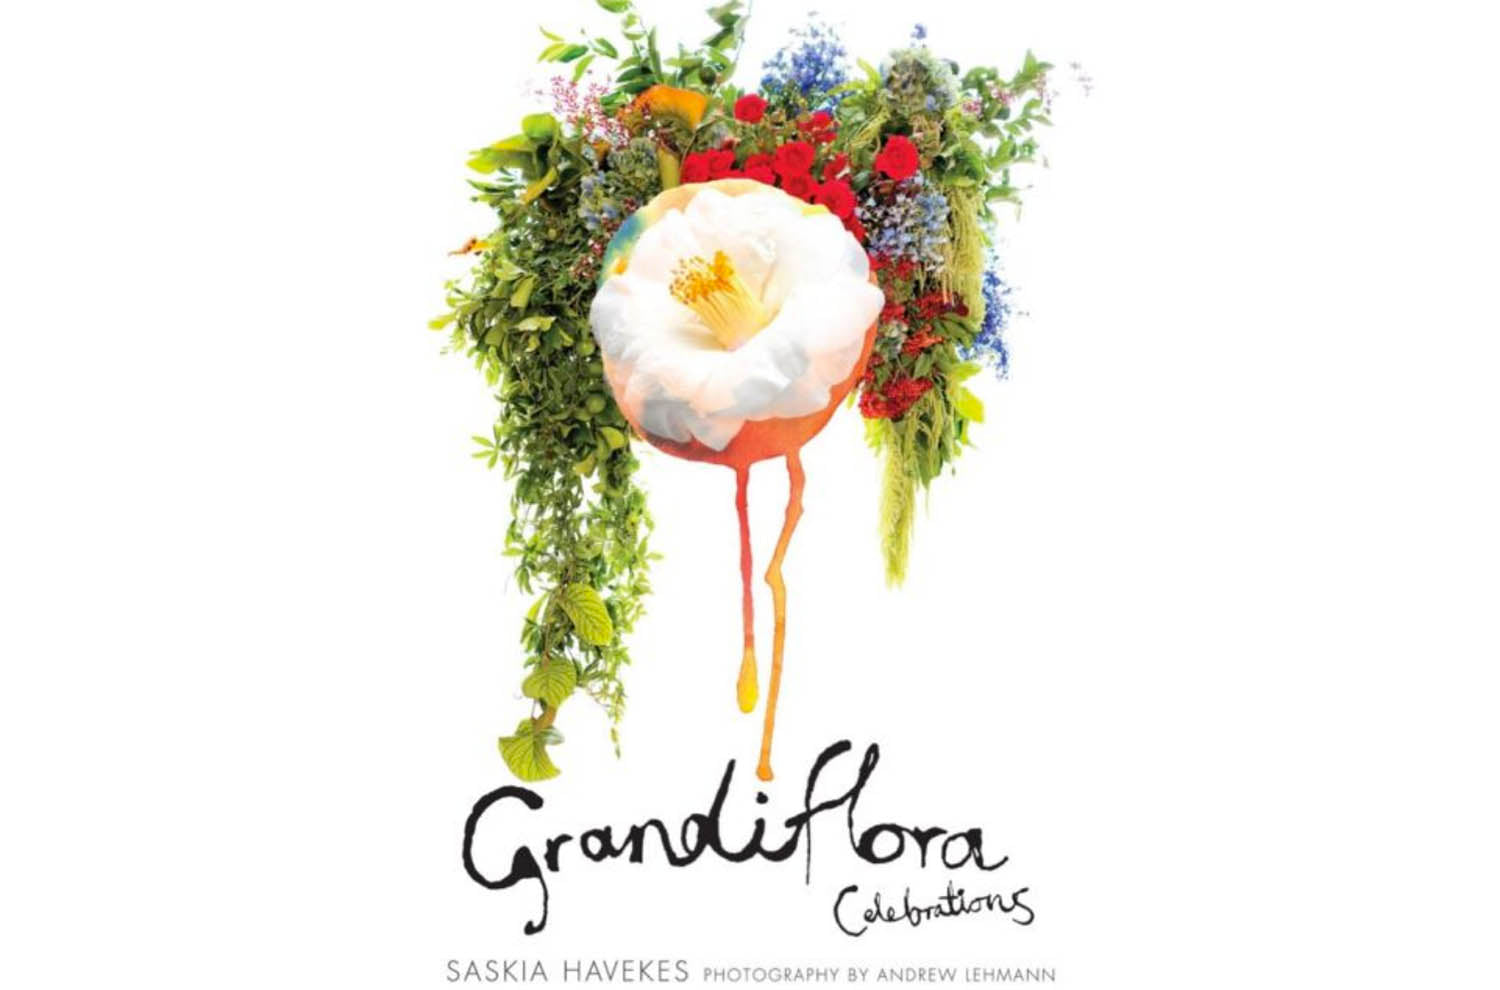 Grandiflora Celebrations by Saskia Havekes